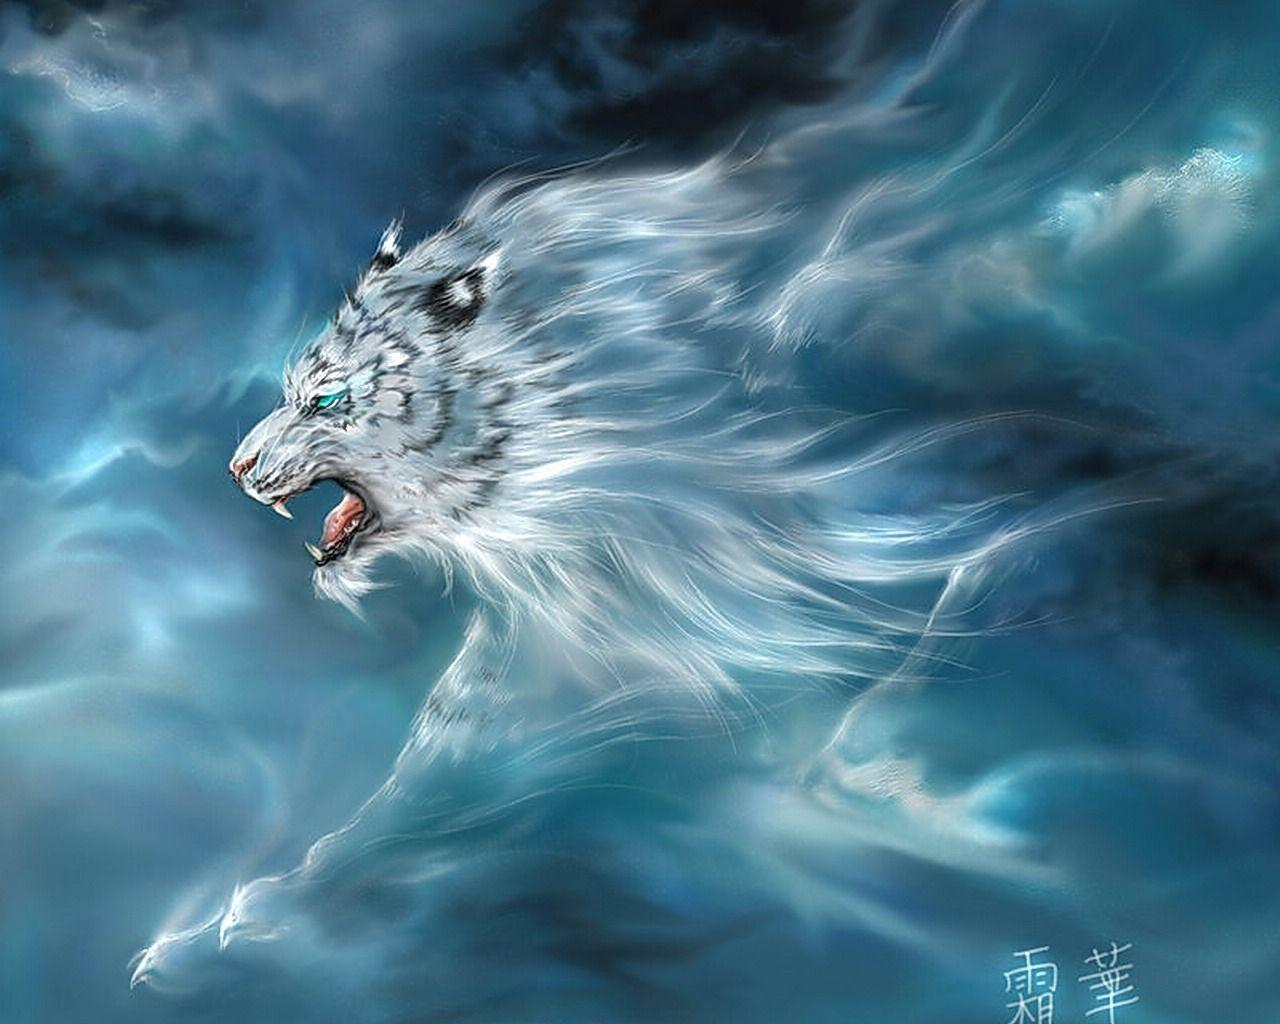 Awesome White TIger Wallpapers HD Desktop 71463 Wallpapers